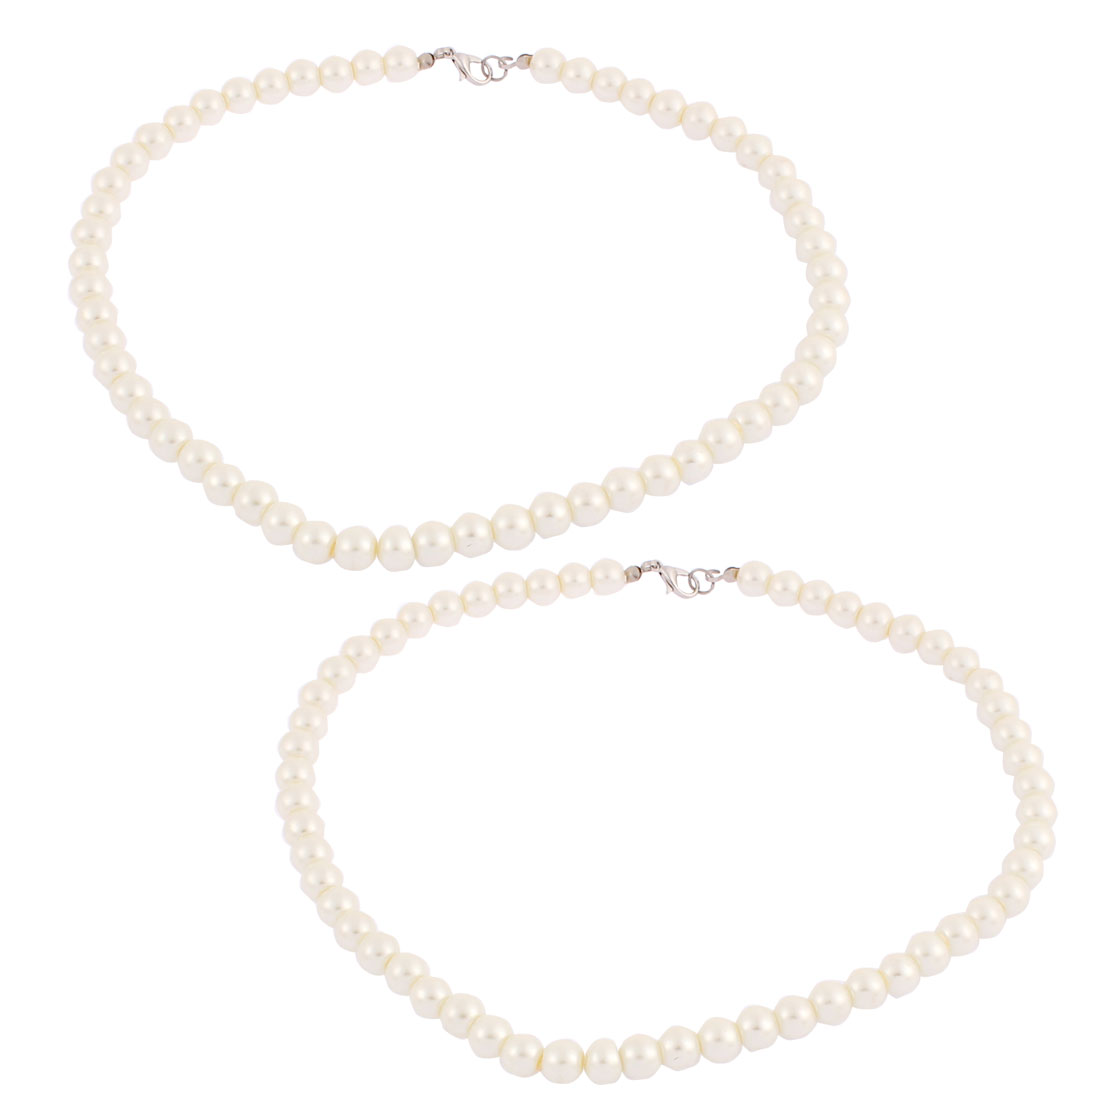 Woman Faux Round Pearl Beaded Linked Necklace Chain Neck Decor 45cm Length 2pcs